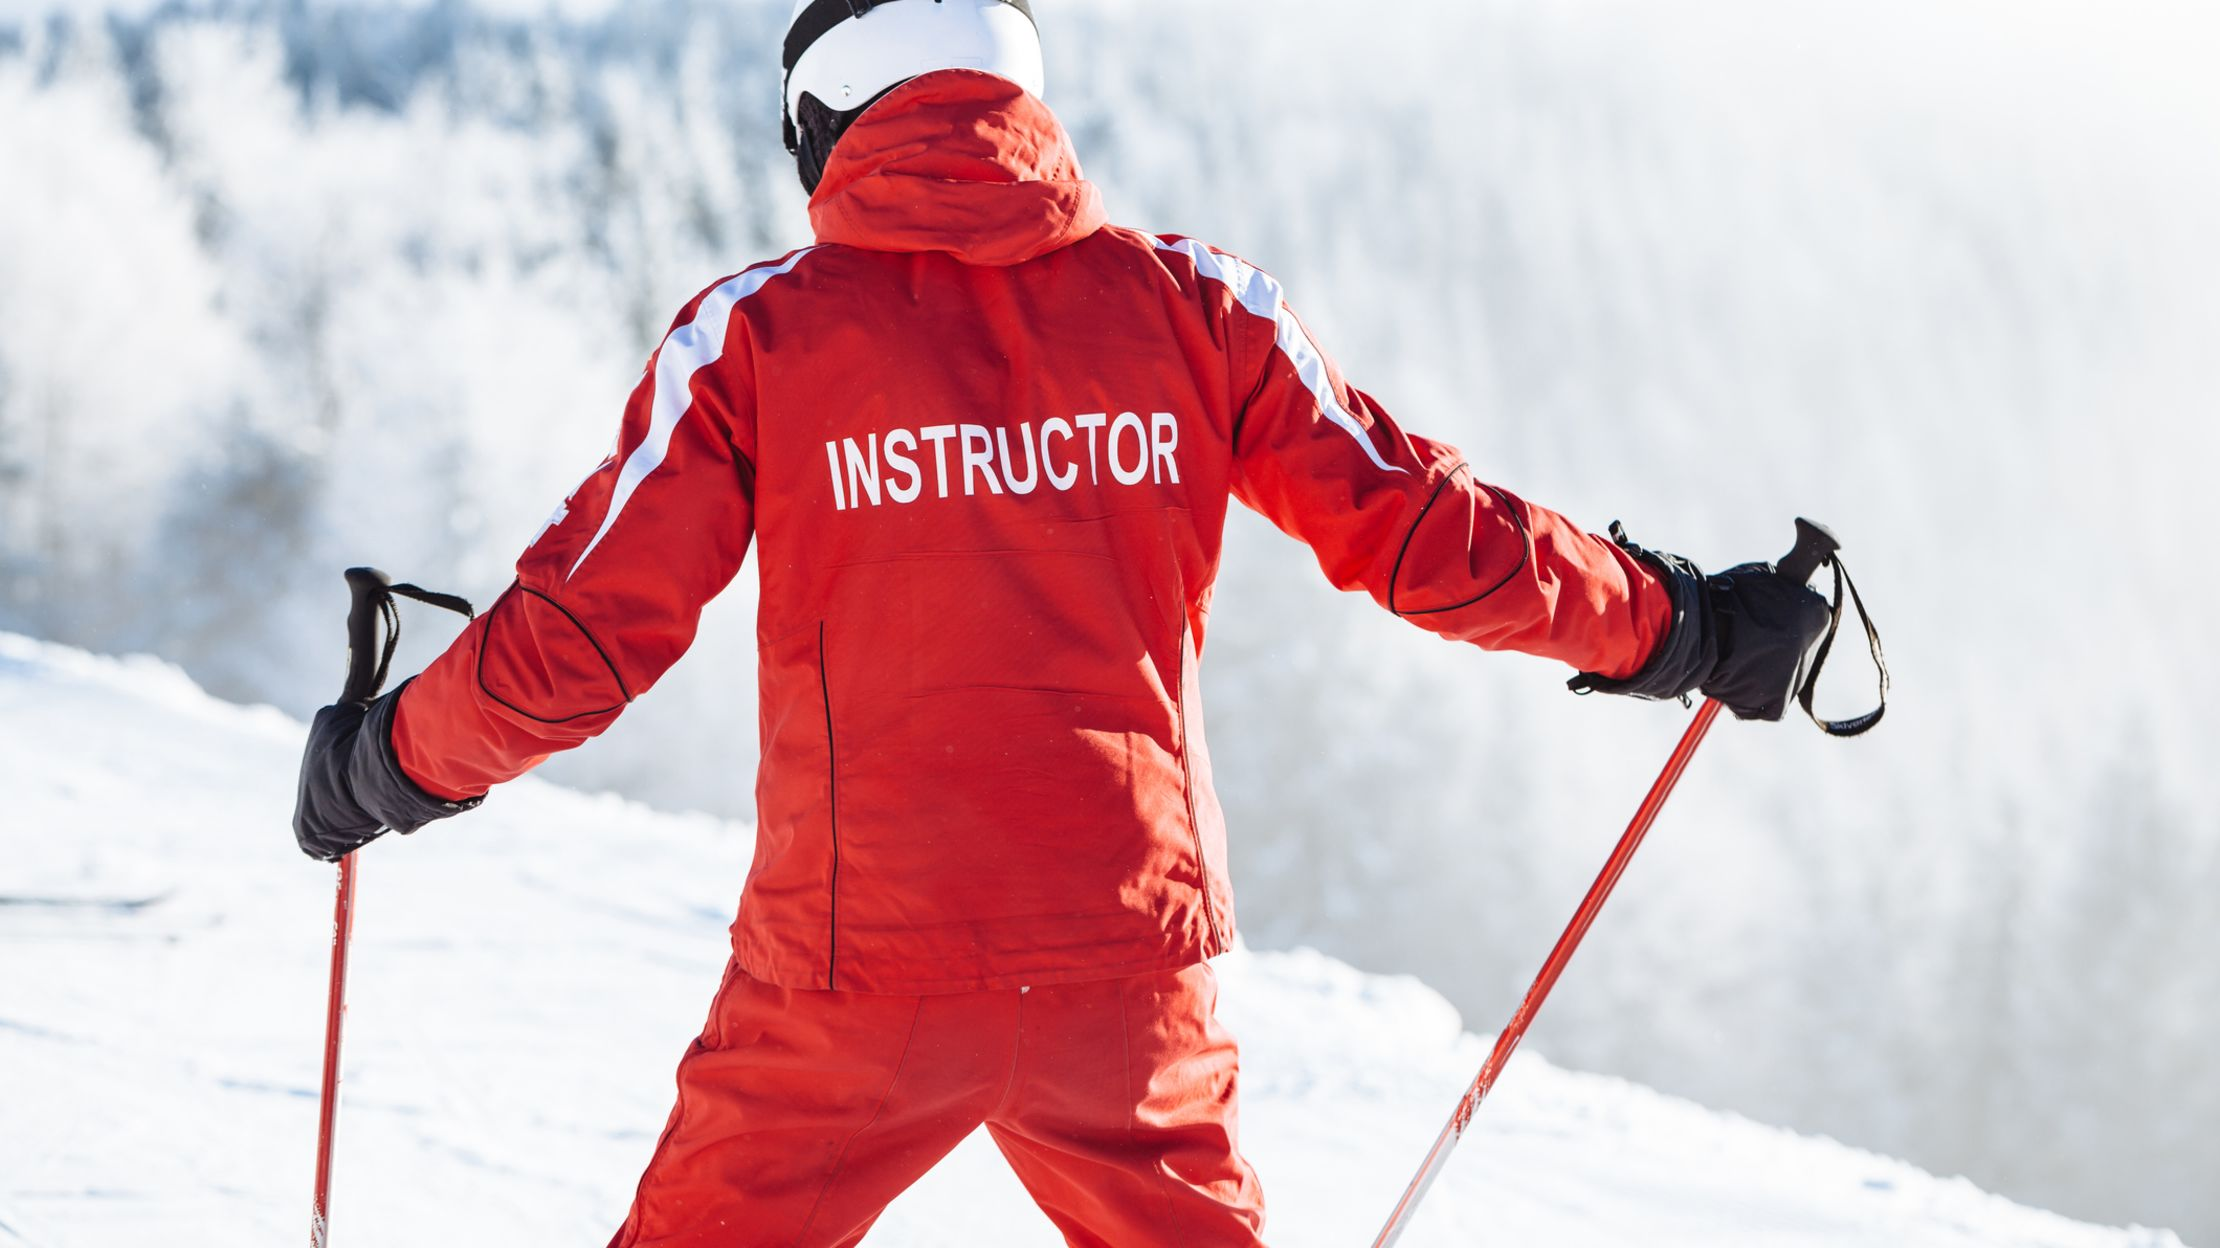 Female Skier Proves There Isn't 'One Thing' That Defines You [Owning It]